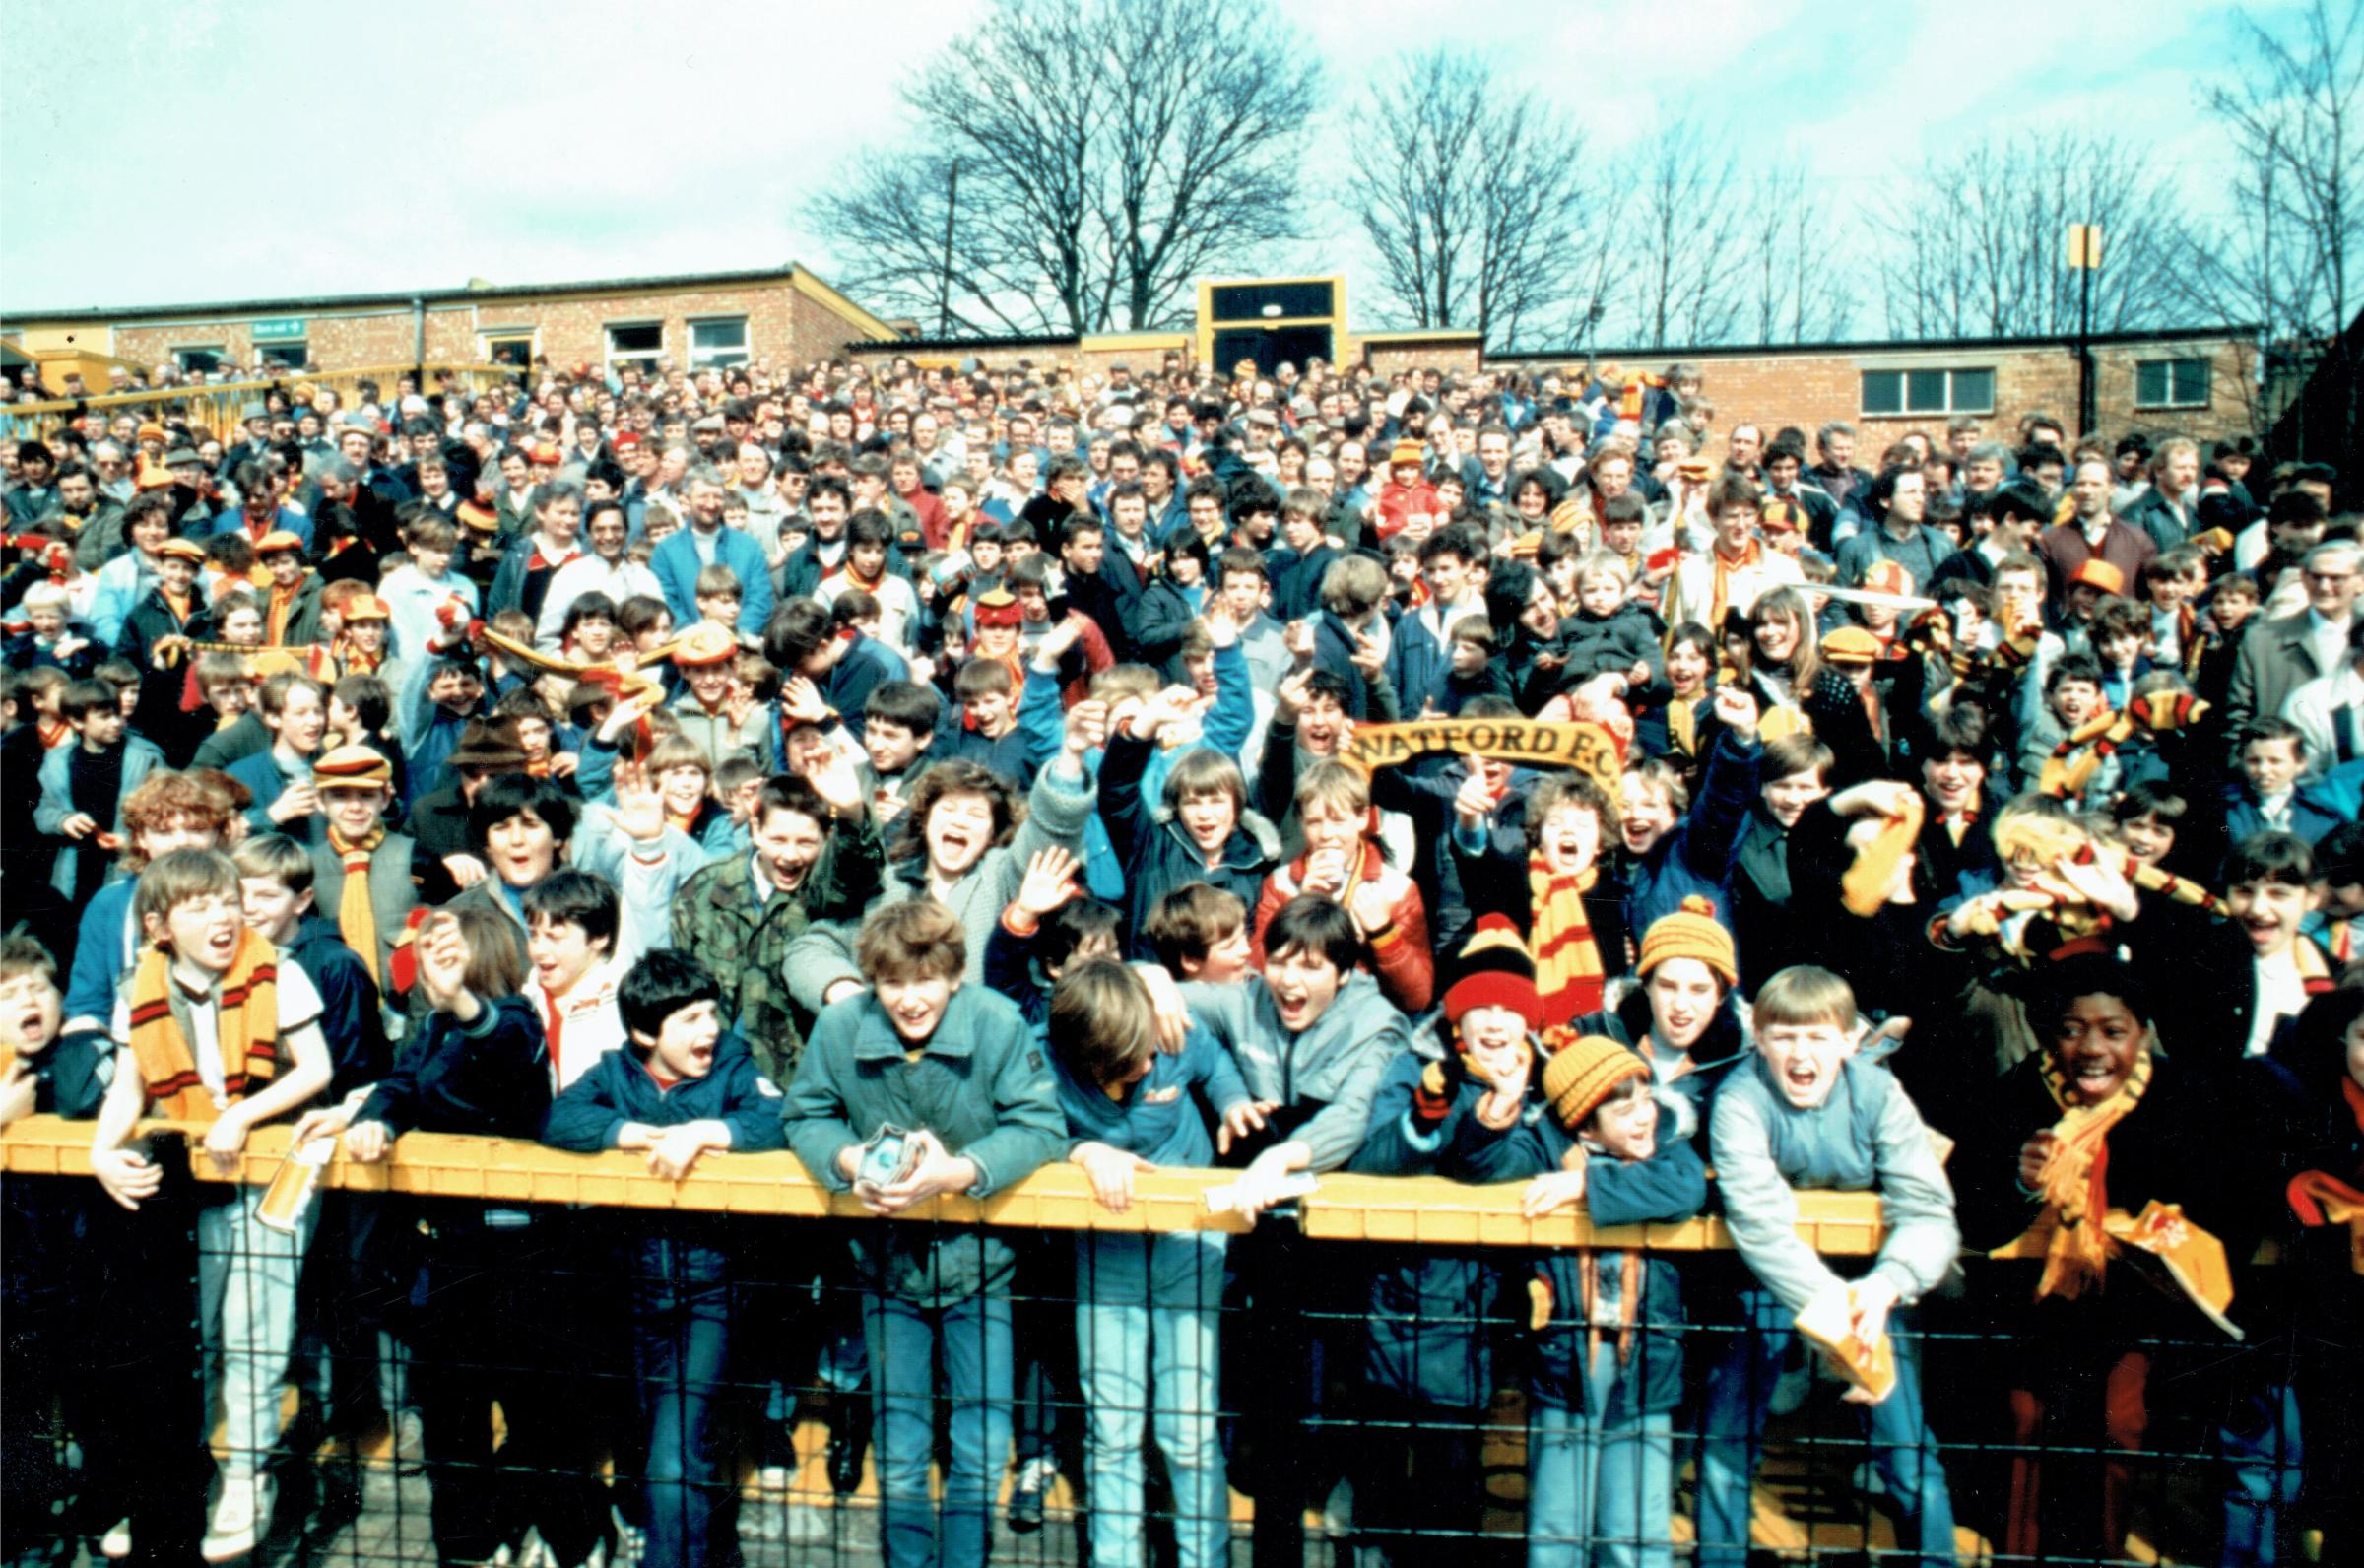 Pictures: Memories of Watford's golden era in the 1980s